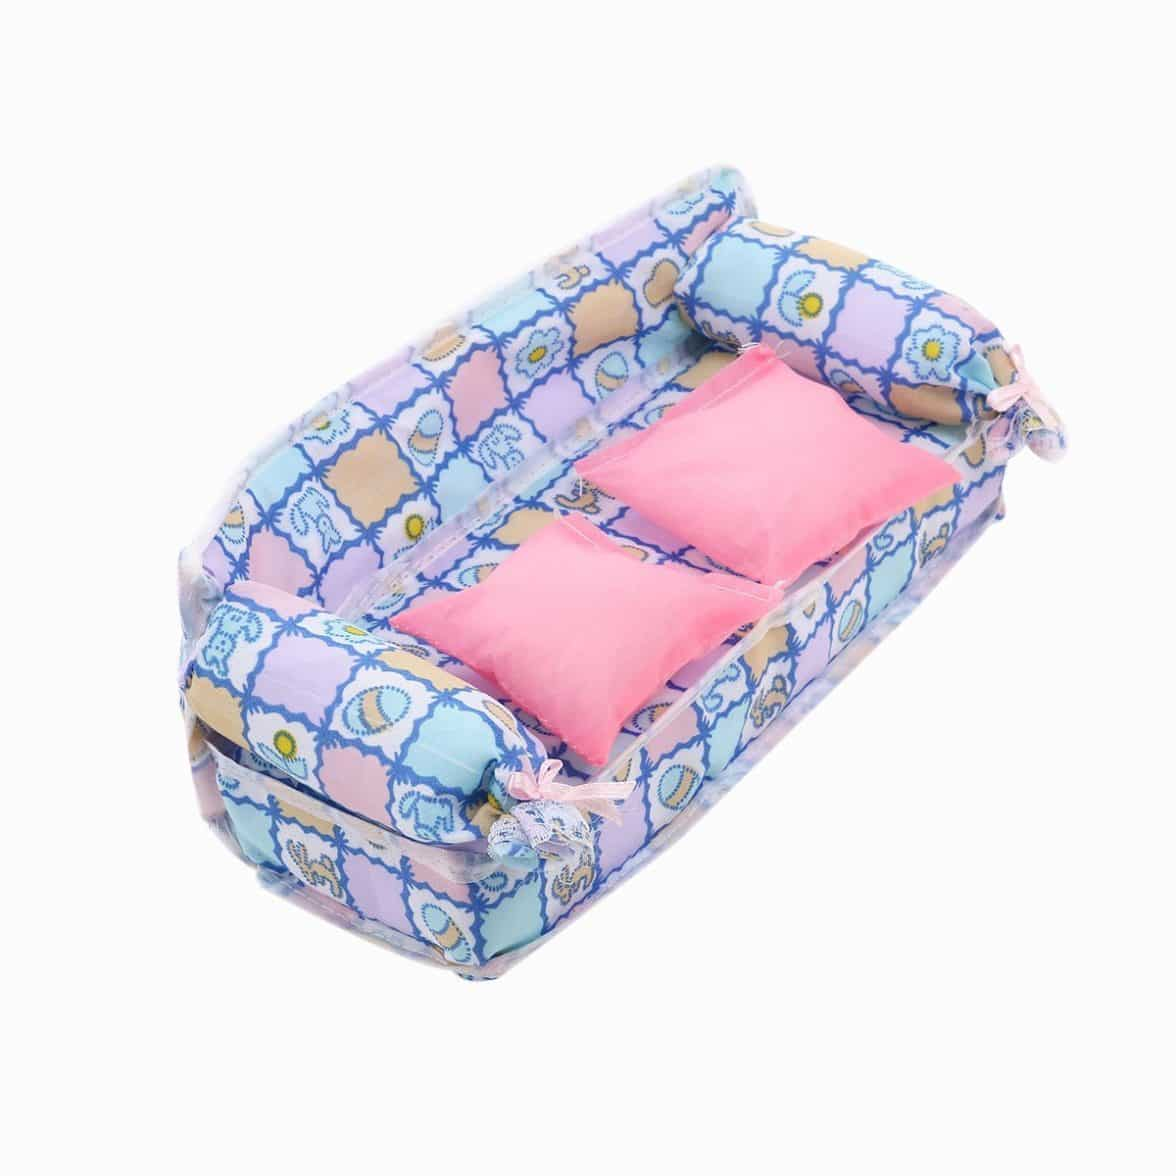 ... Tinksky Lovely Miniature Dollhouse Furniture Flower Print Sofa Couch with 2 Cushions for Barbie Dolls